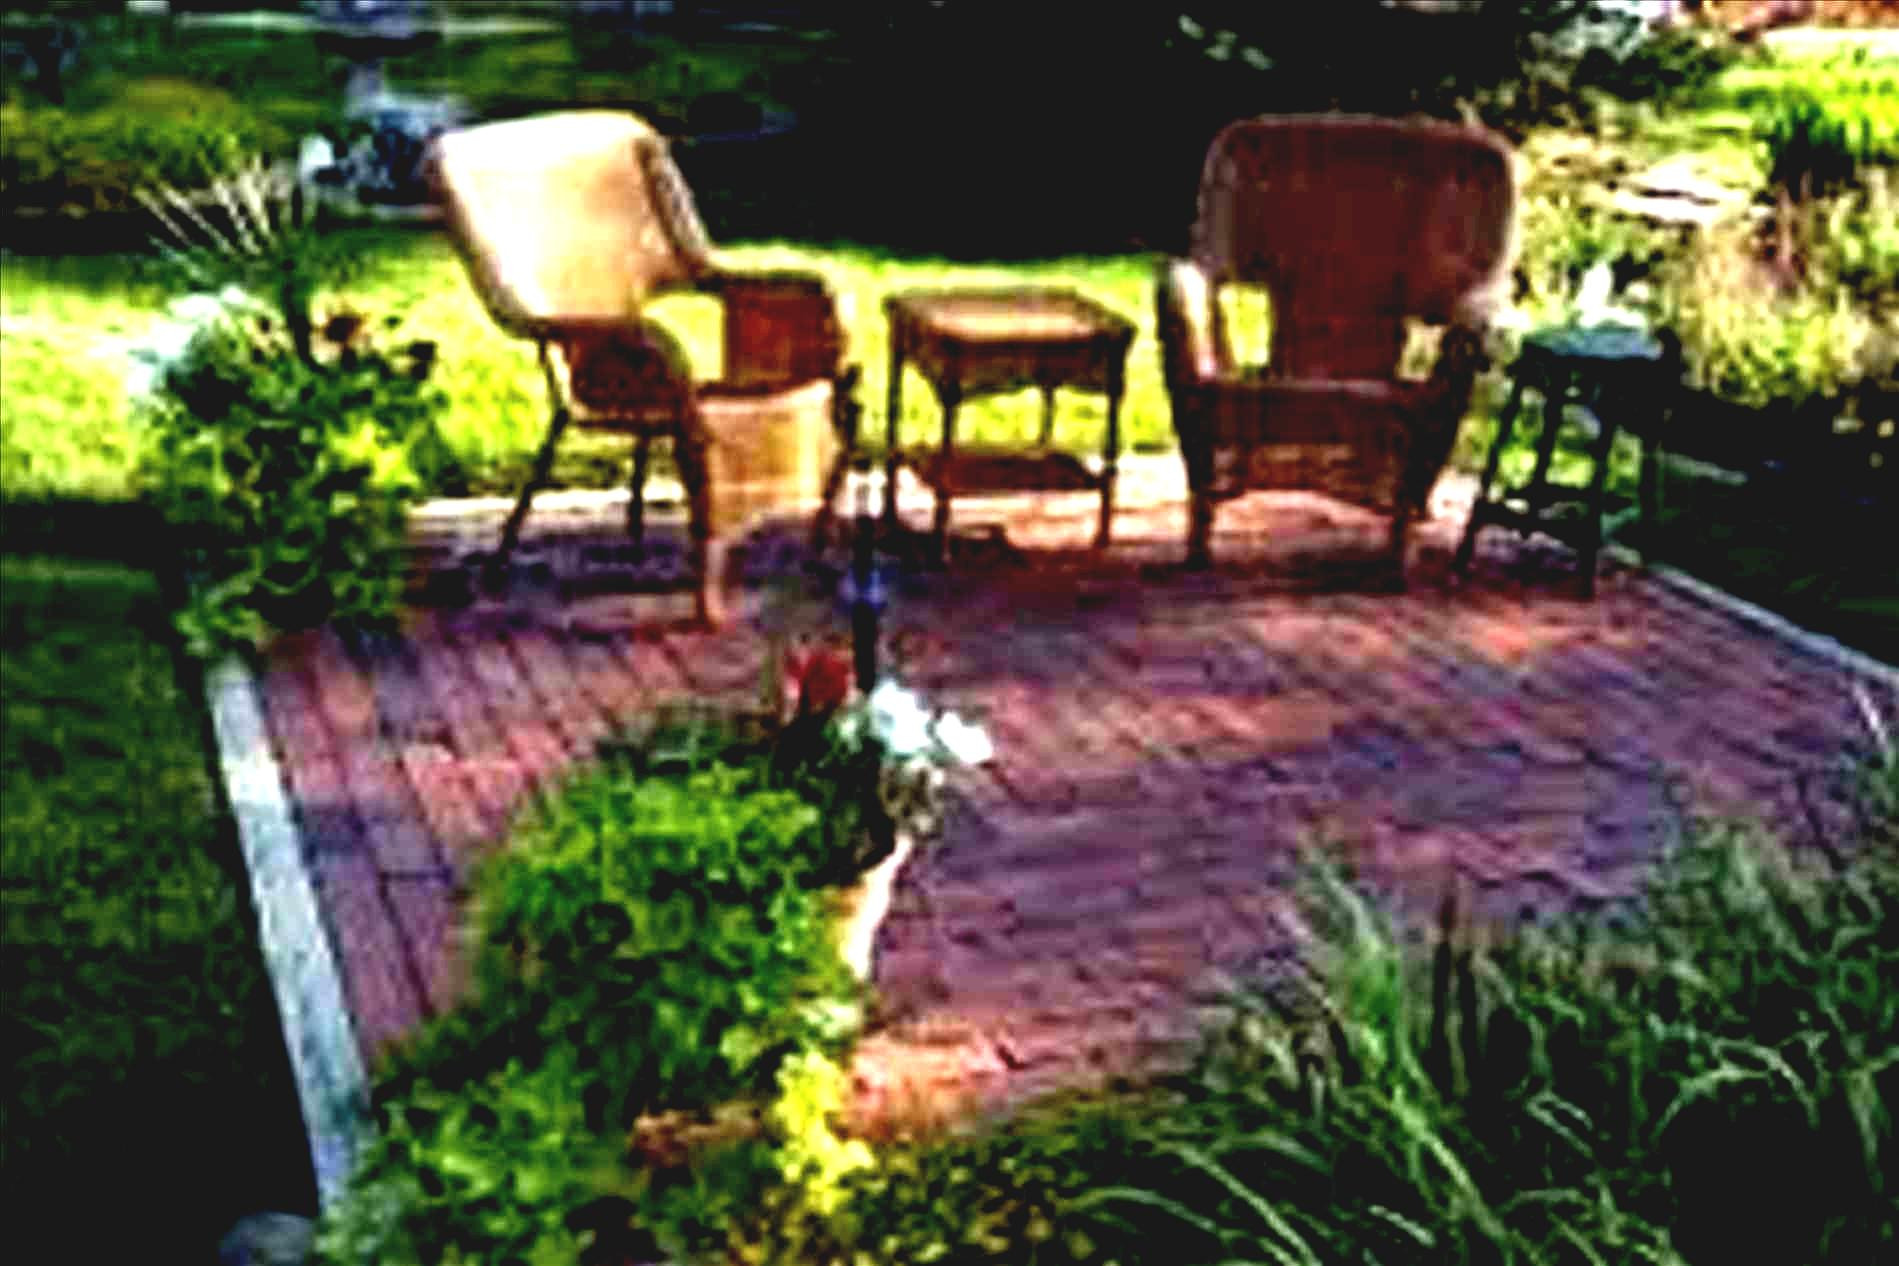 Best ideas about Small Backyard Ideas On A Budget . Save or Pin A Bud Low Wall Pressure Sloped Landscaping Block Now.